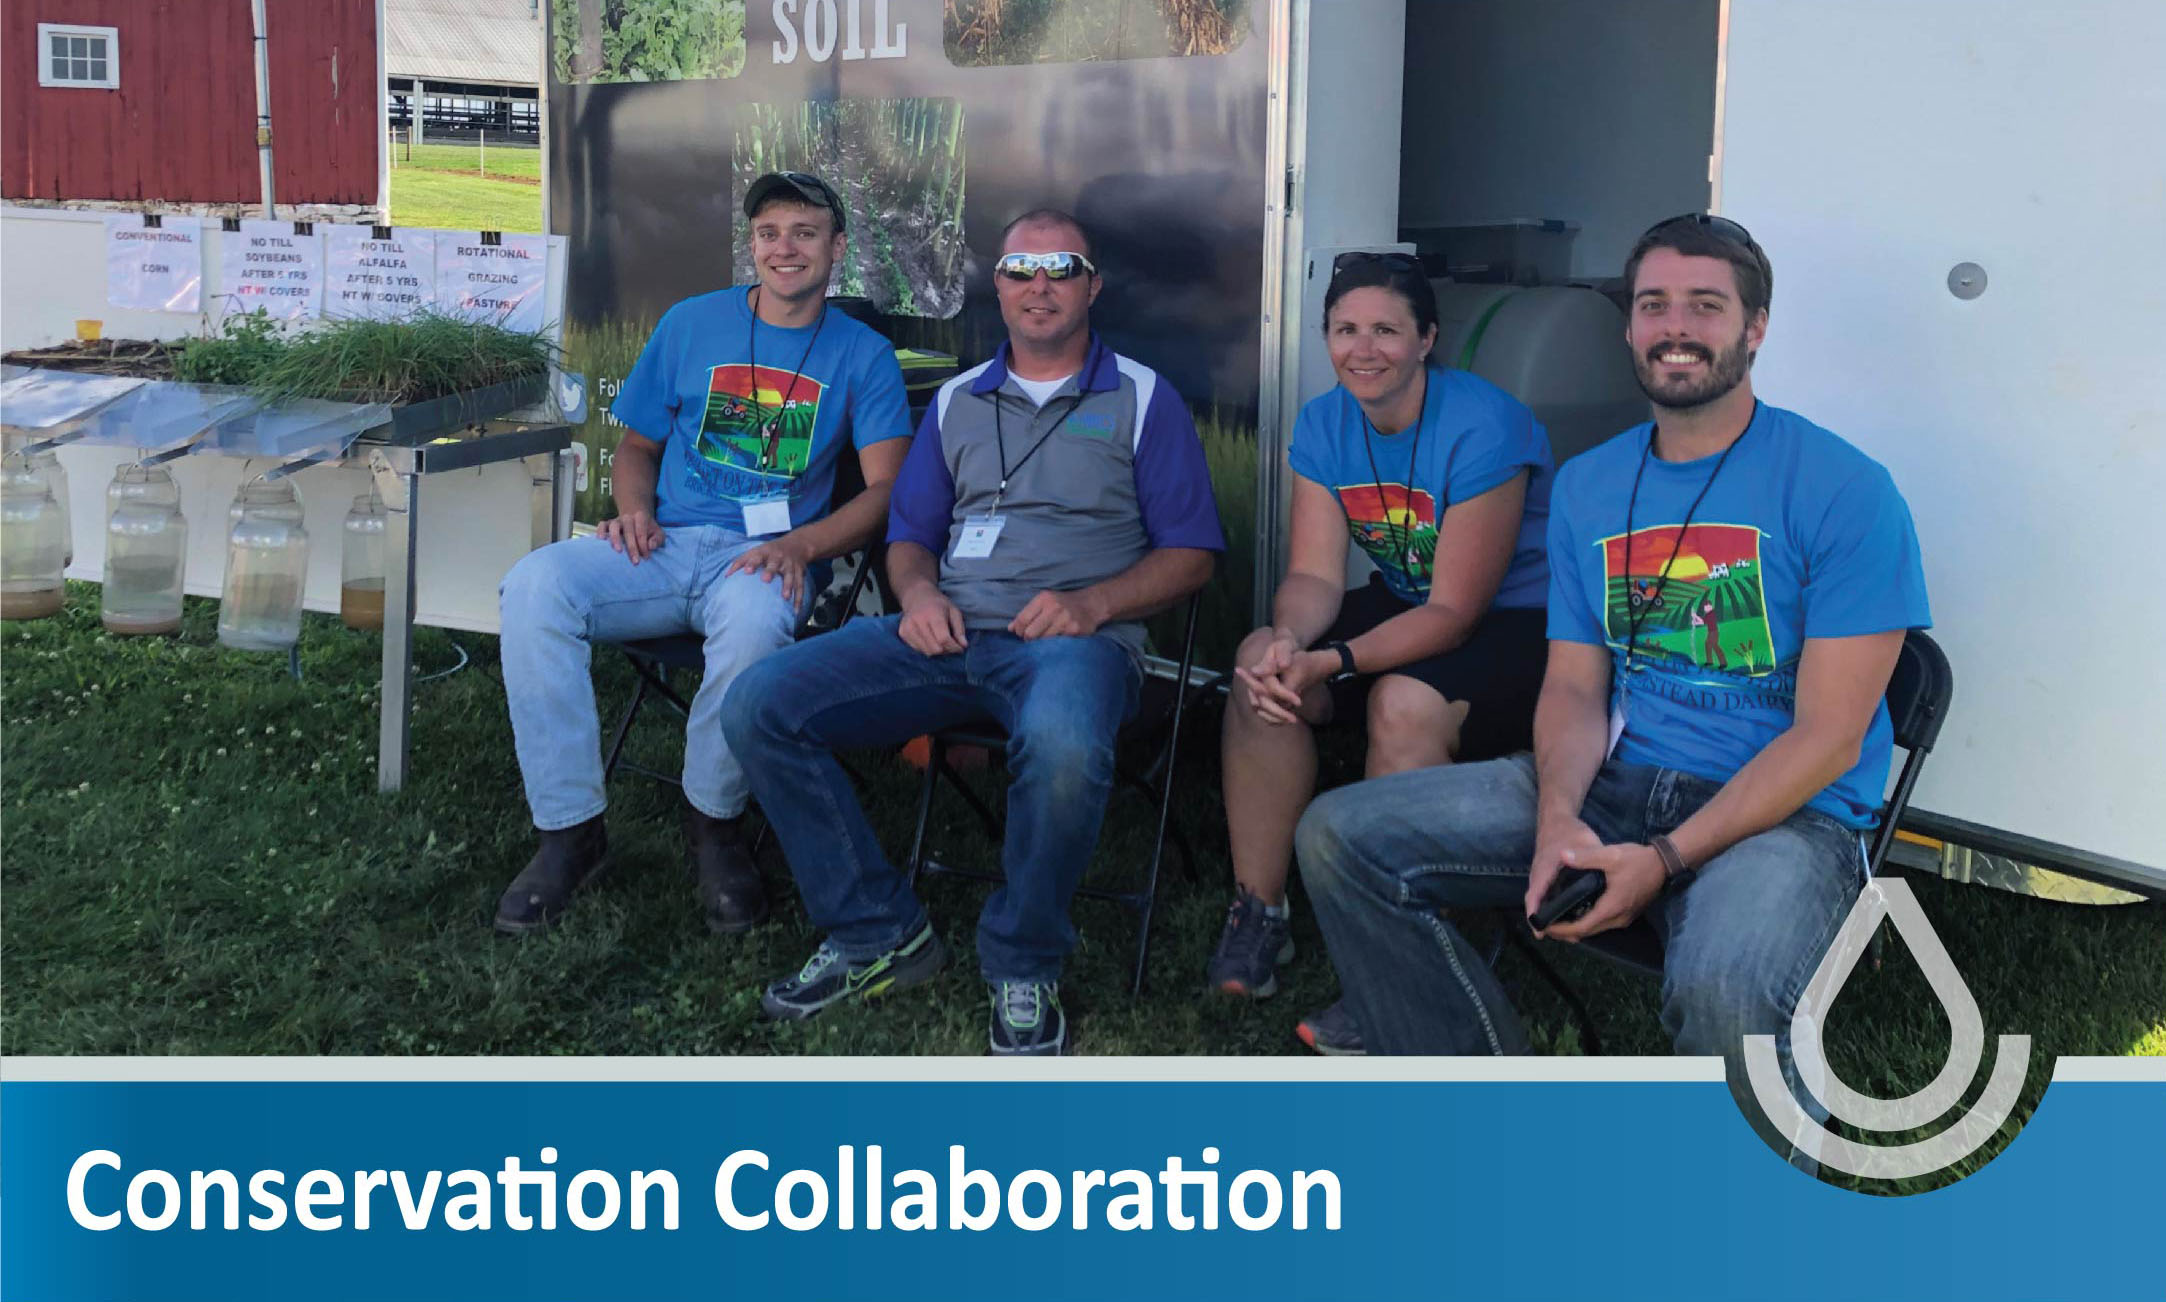 Conservation Collaboration